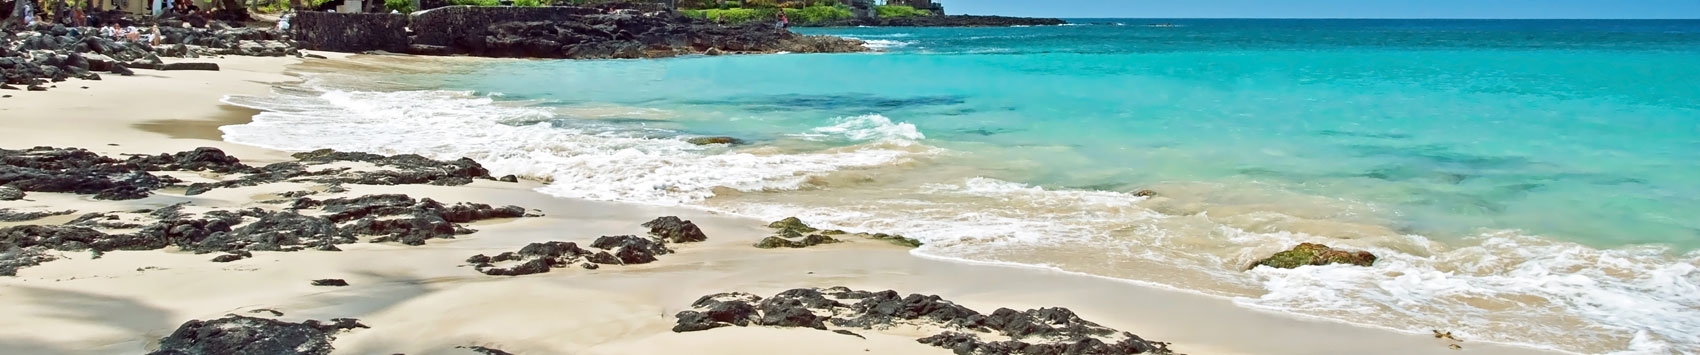 Hawaii Big Island Travel Guide and Hotels   Aqua Aston Hotels White sand beach Island of Hawaii